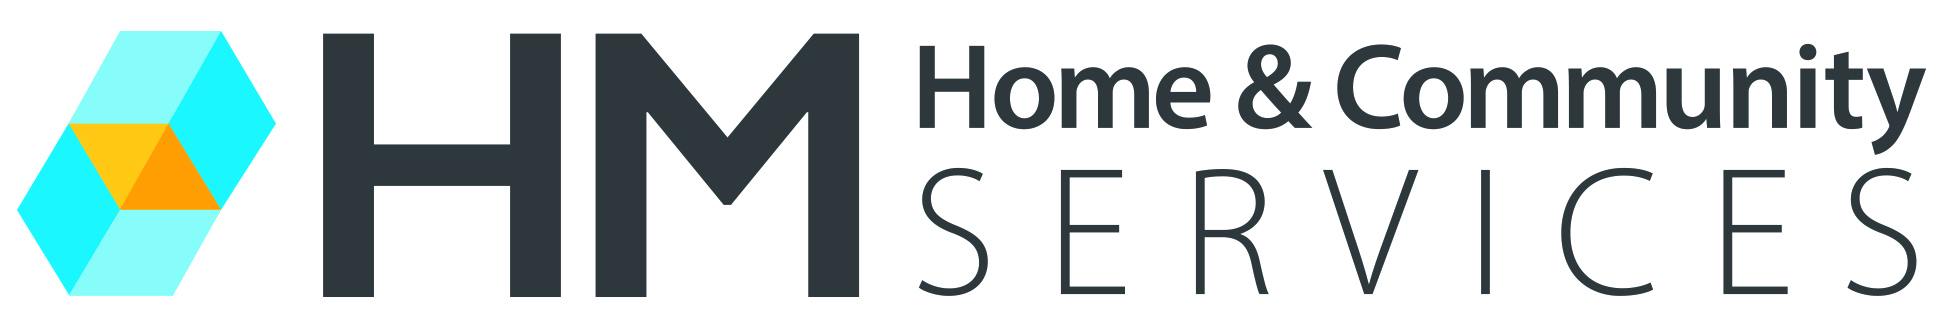 HM home and community services